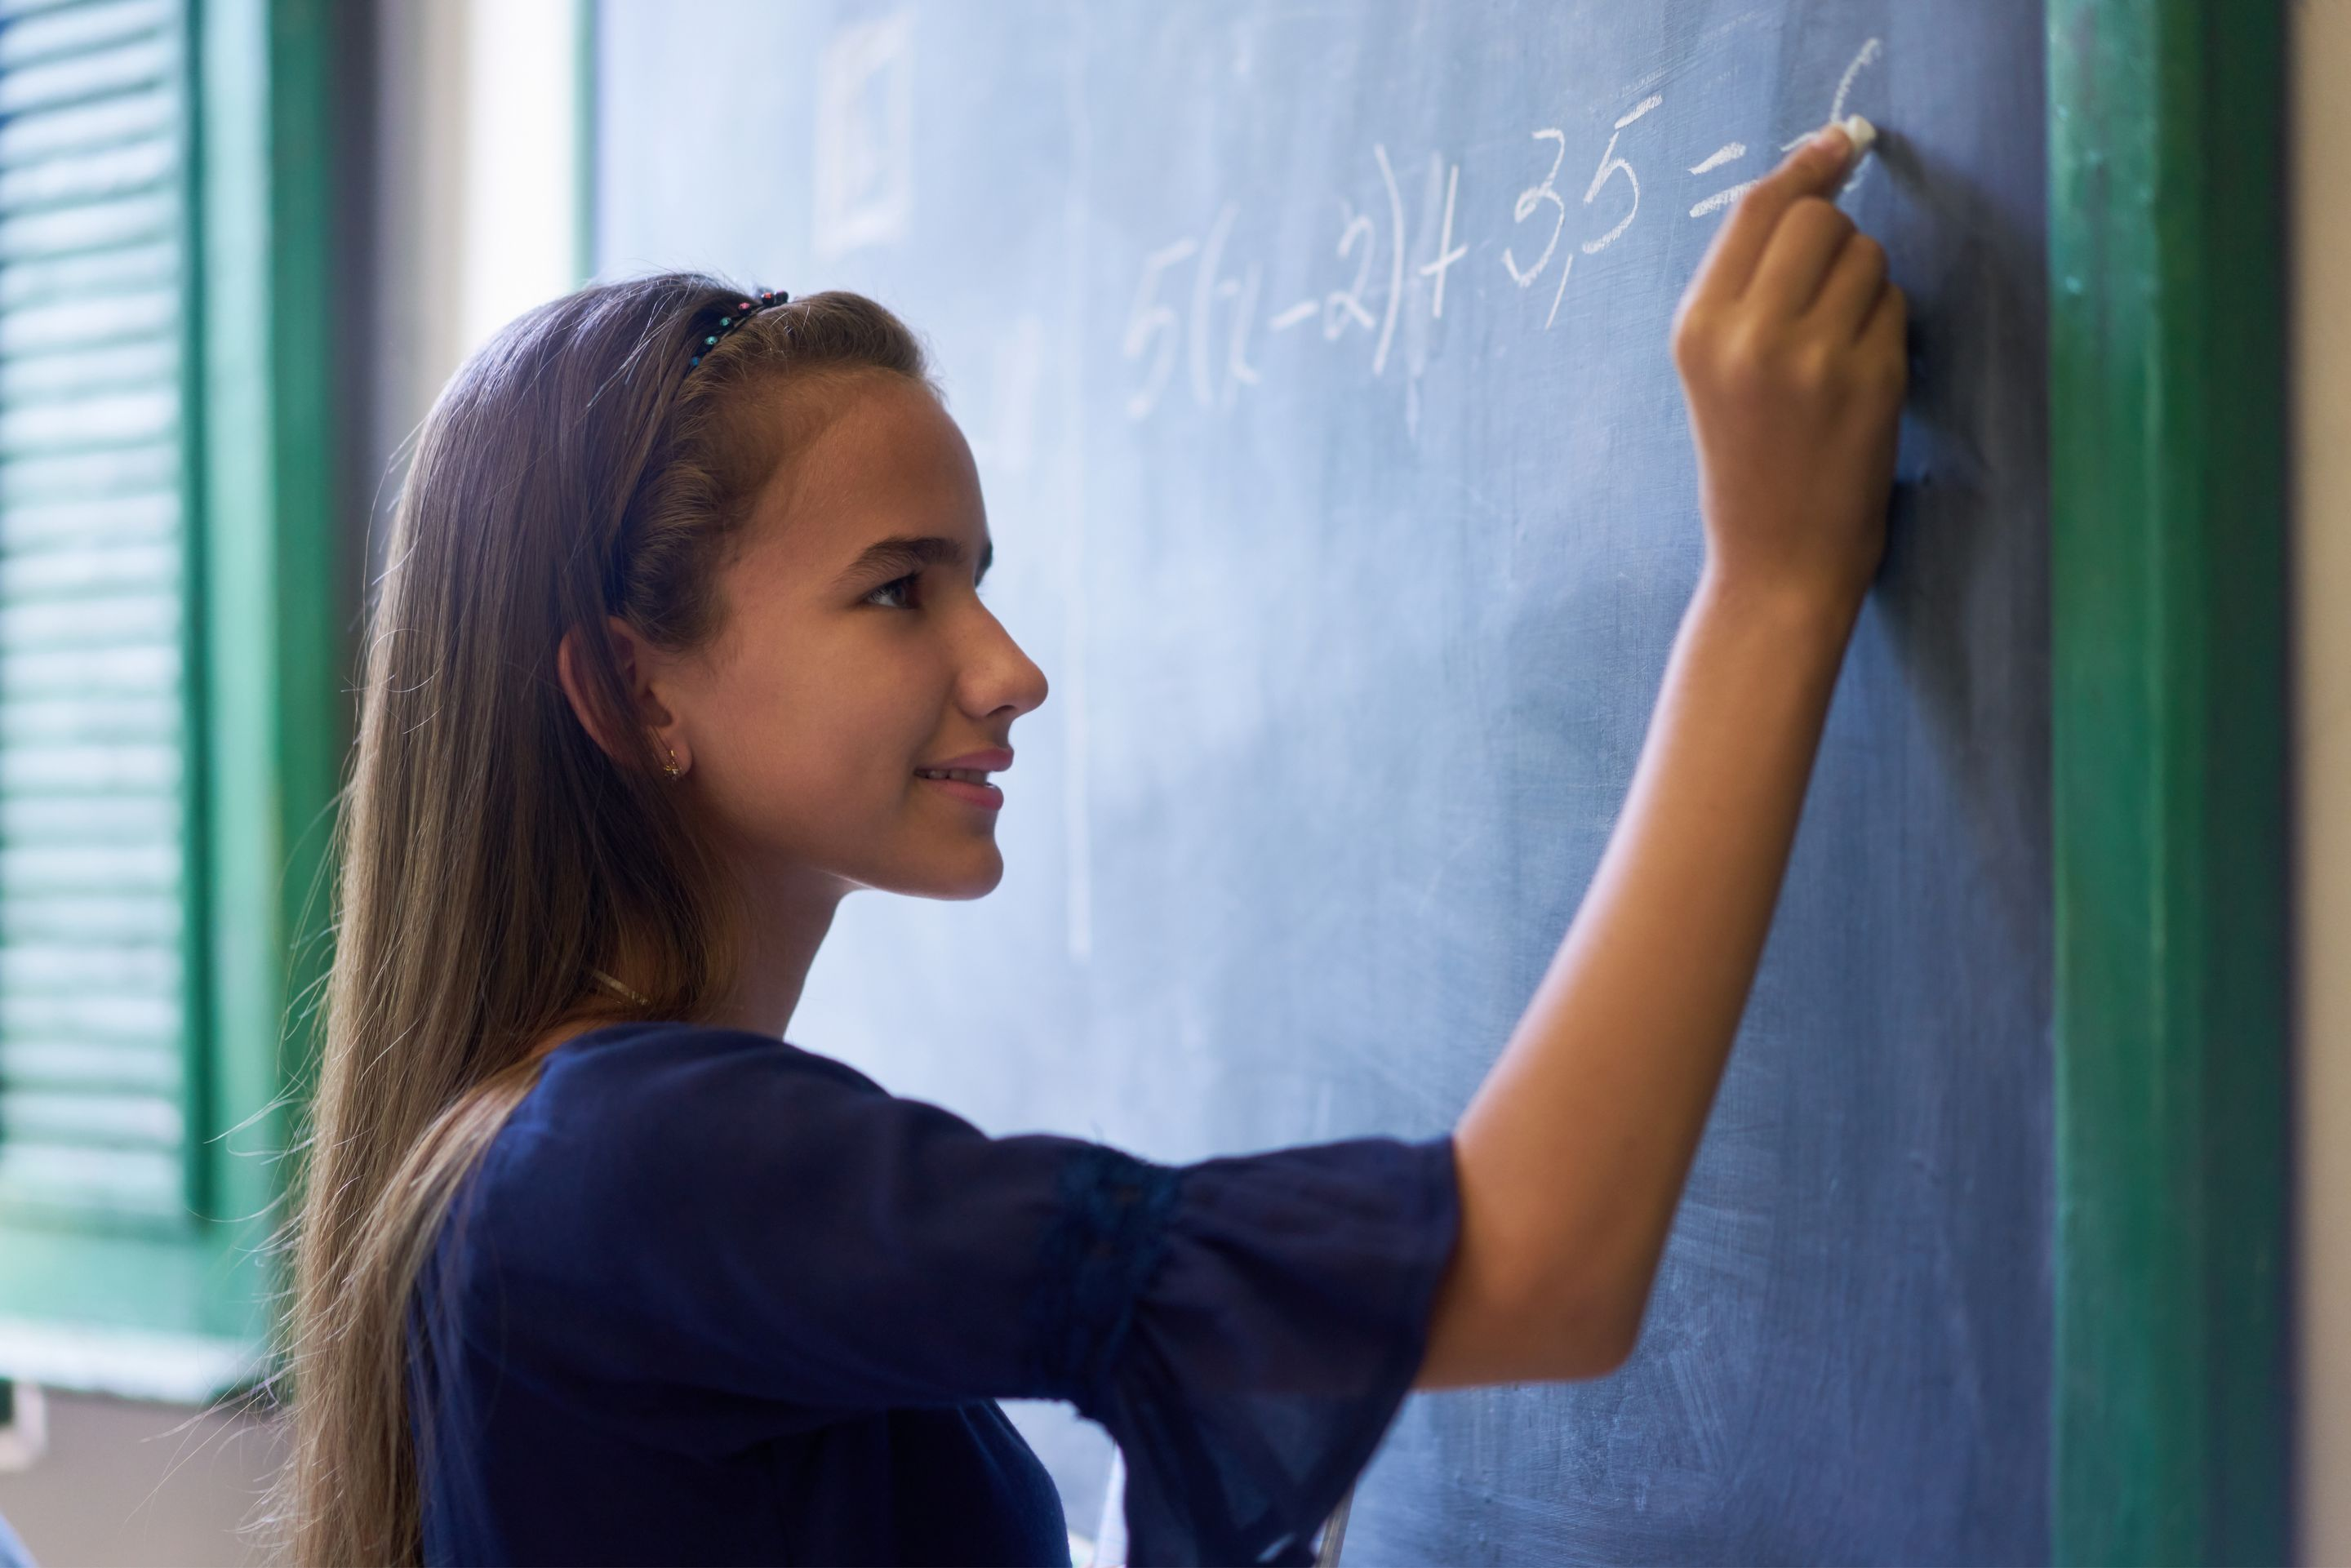 A middle school student doing algebra on a blackboard